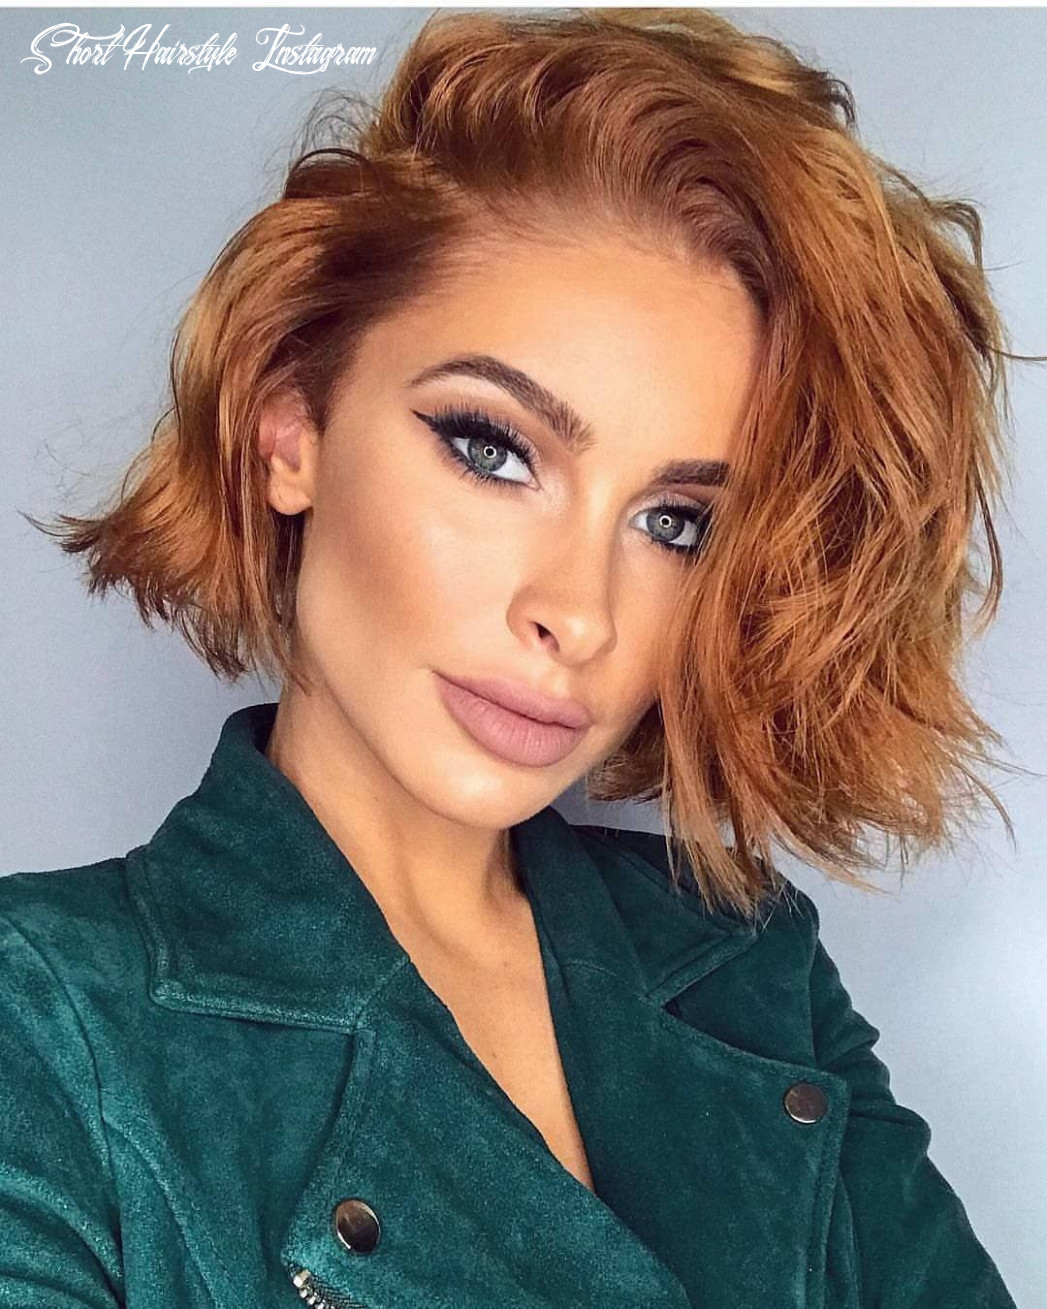 9 of the most stunning short hairstyles on instagram (march 9